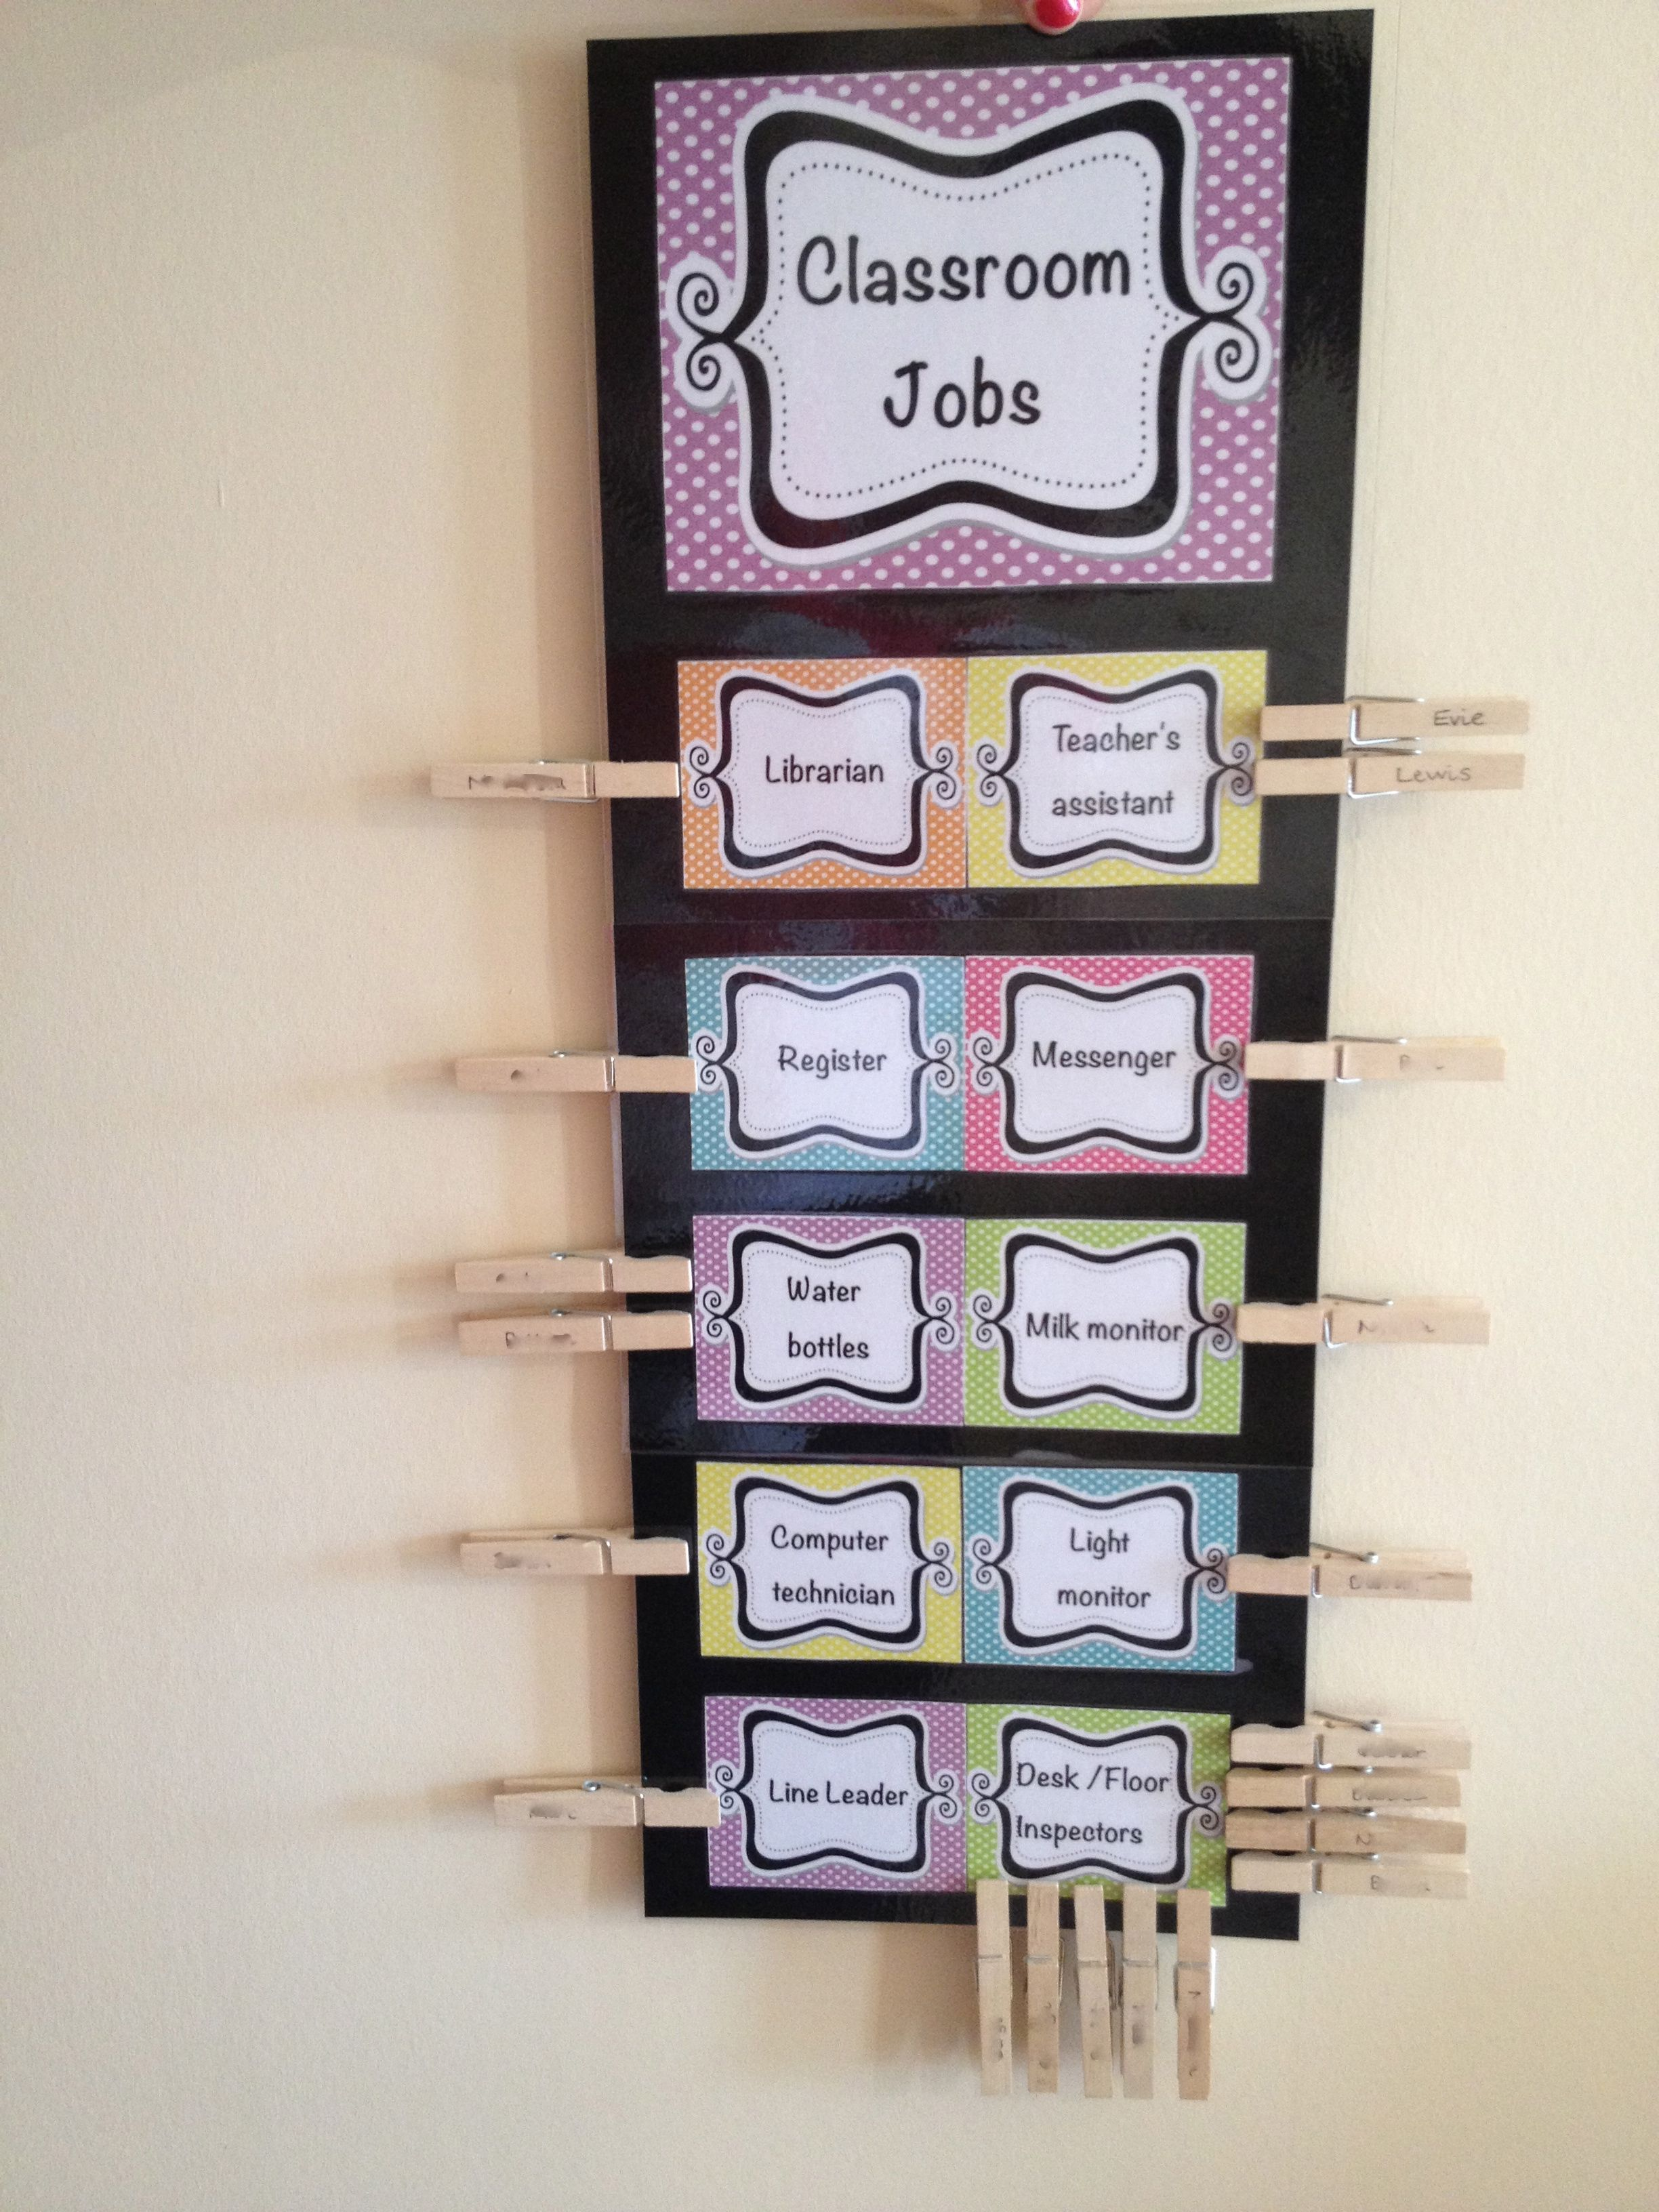 Classroom Theme Ideas List ~ Class jobs chart with names on clothes pegs to move each